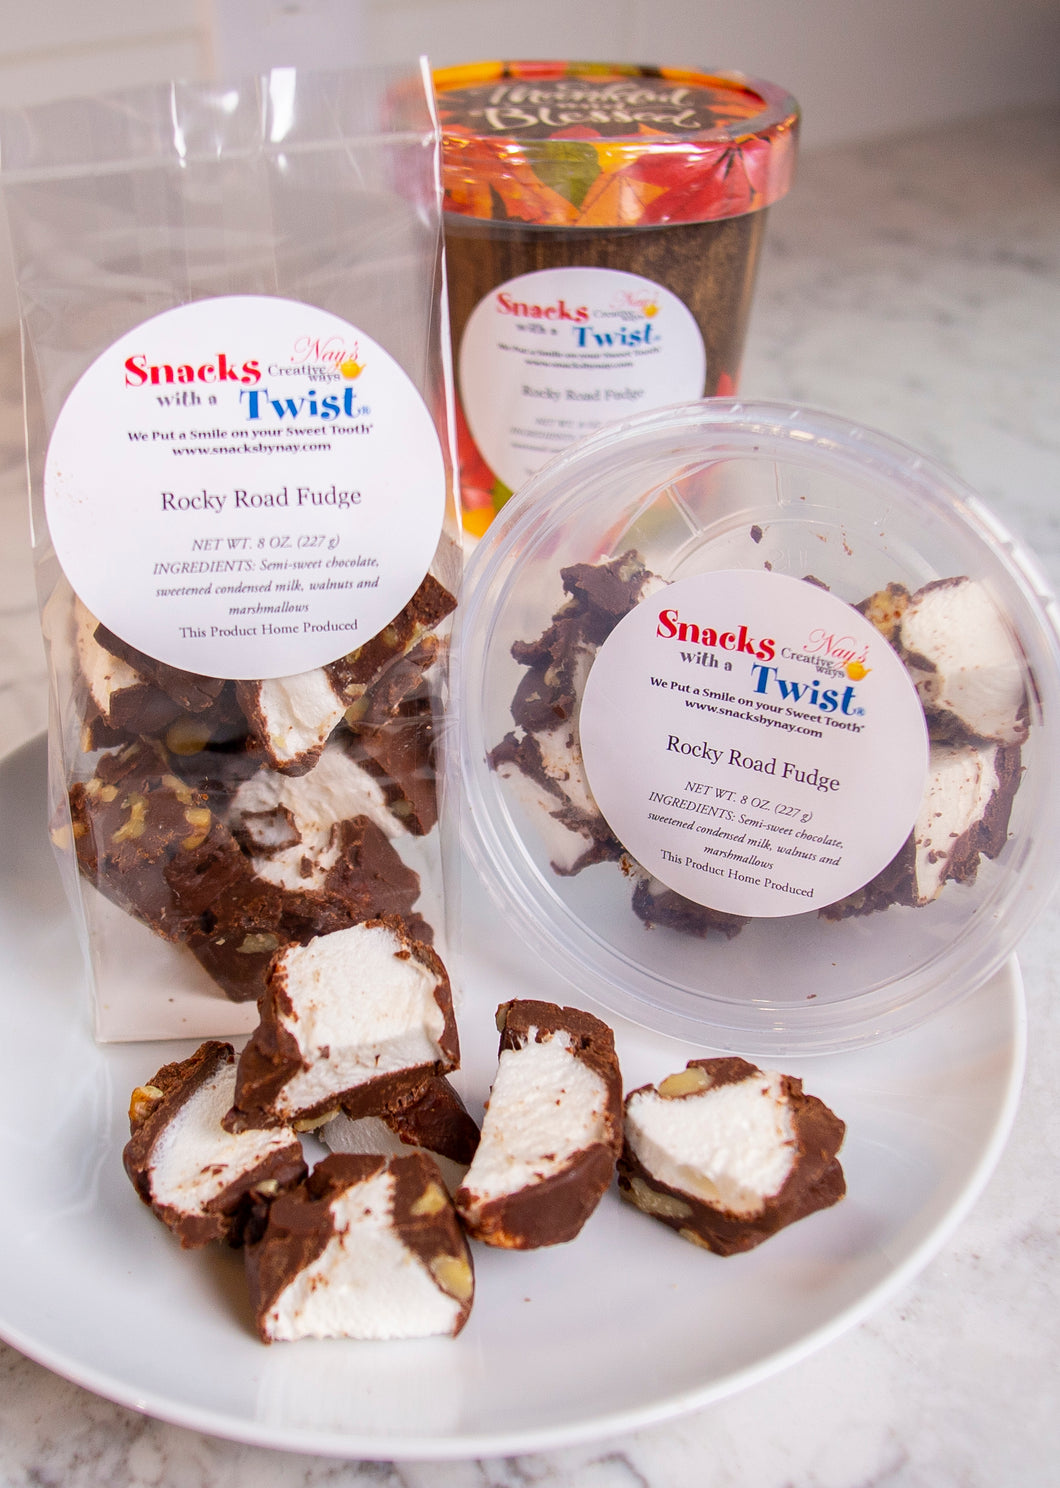 Rocky Road Fudge 4 ounce